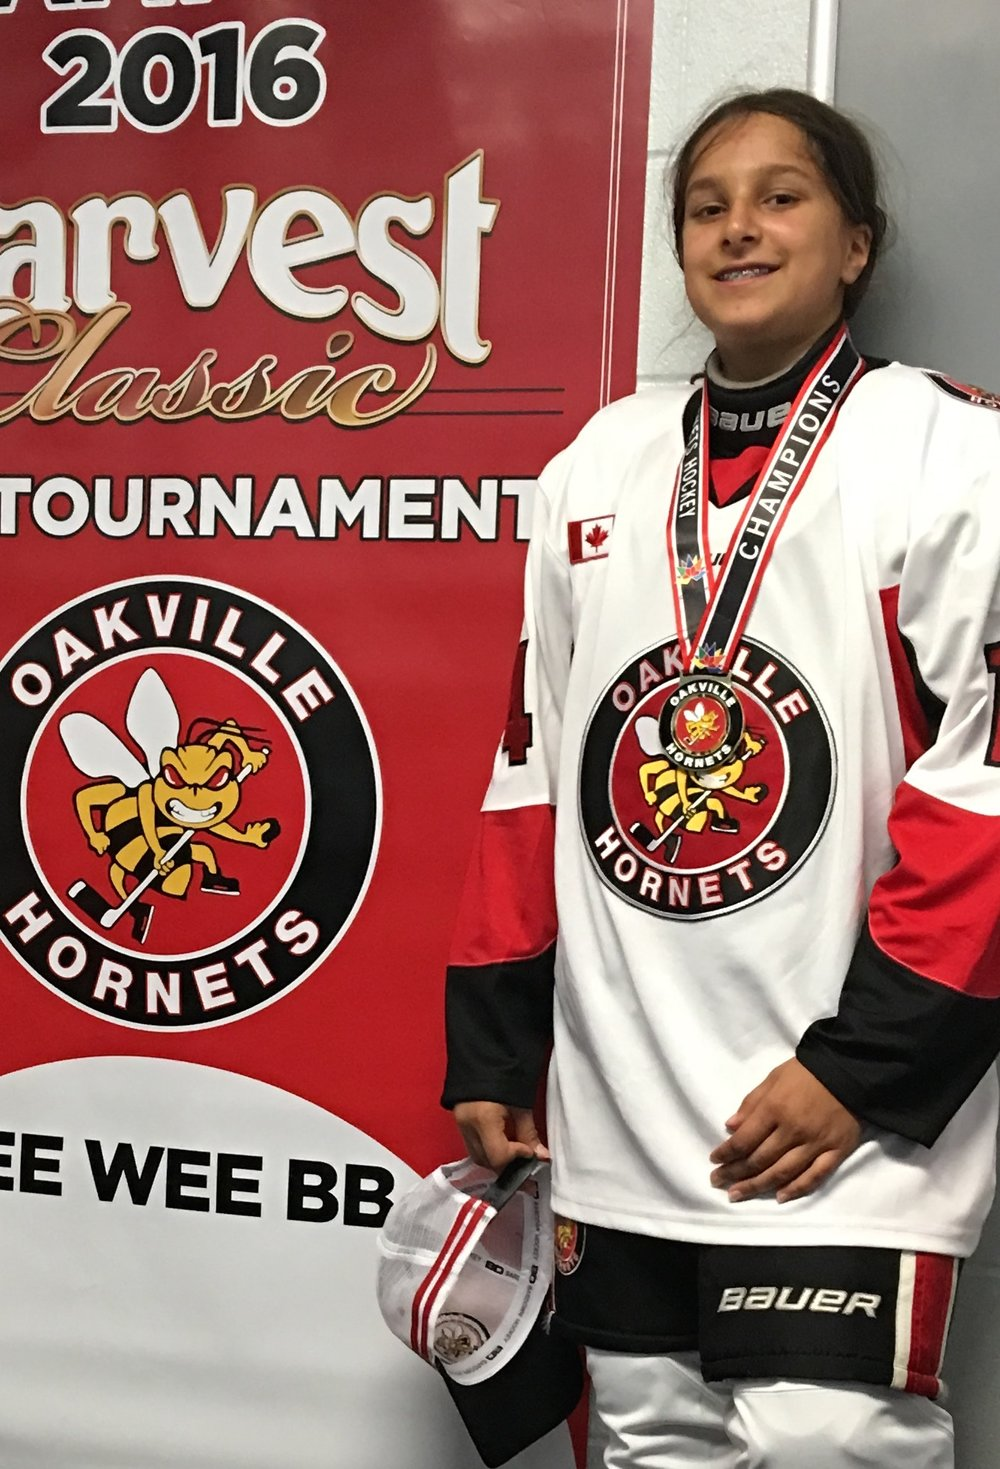 Priya Chaudhari  Hometown: Oakville, ON Number: 14 Team: Oakville Hornets PEEWEE BB Position: Defense/Forward  Shoots: Left Favorite Pre-Game Meal: Hard Boiled Eggs Favorite Player: Bobbie Orr  Northern Freeze Cups:  2